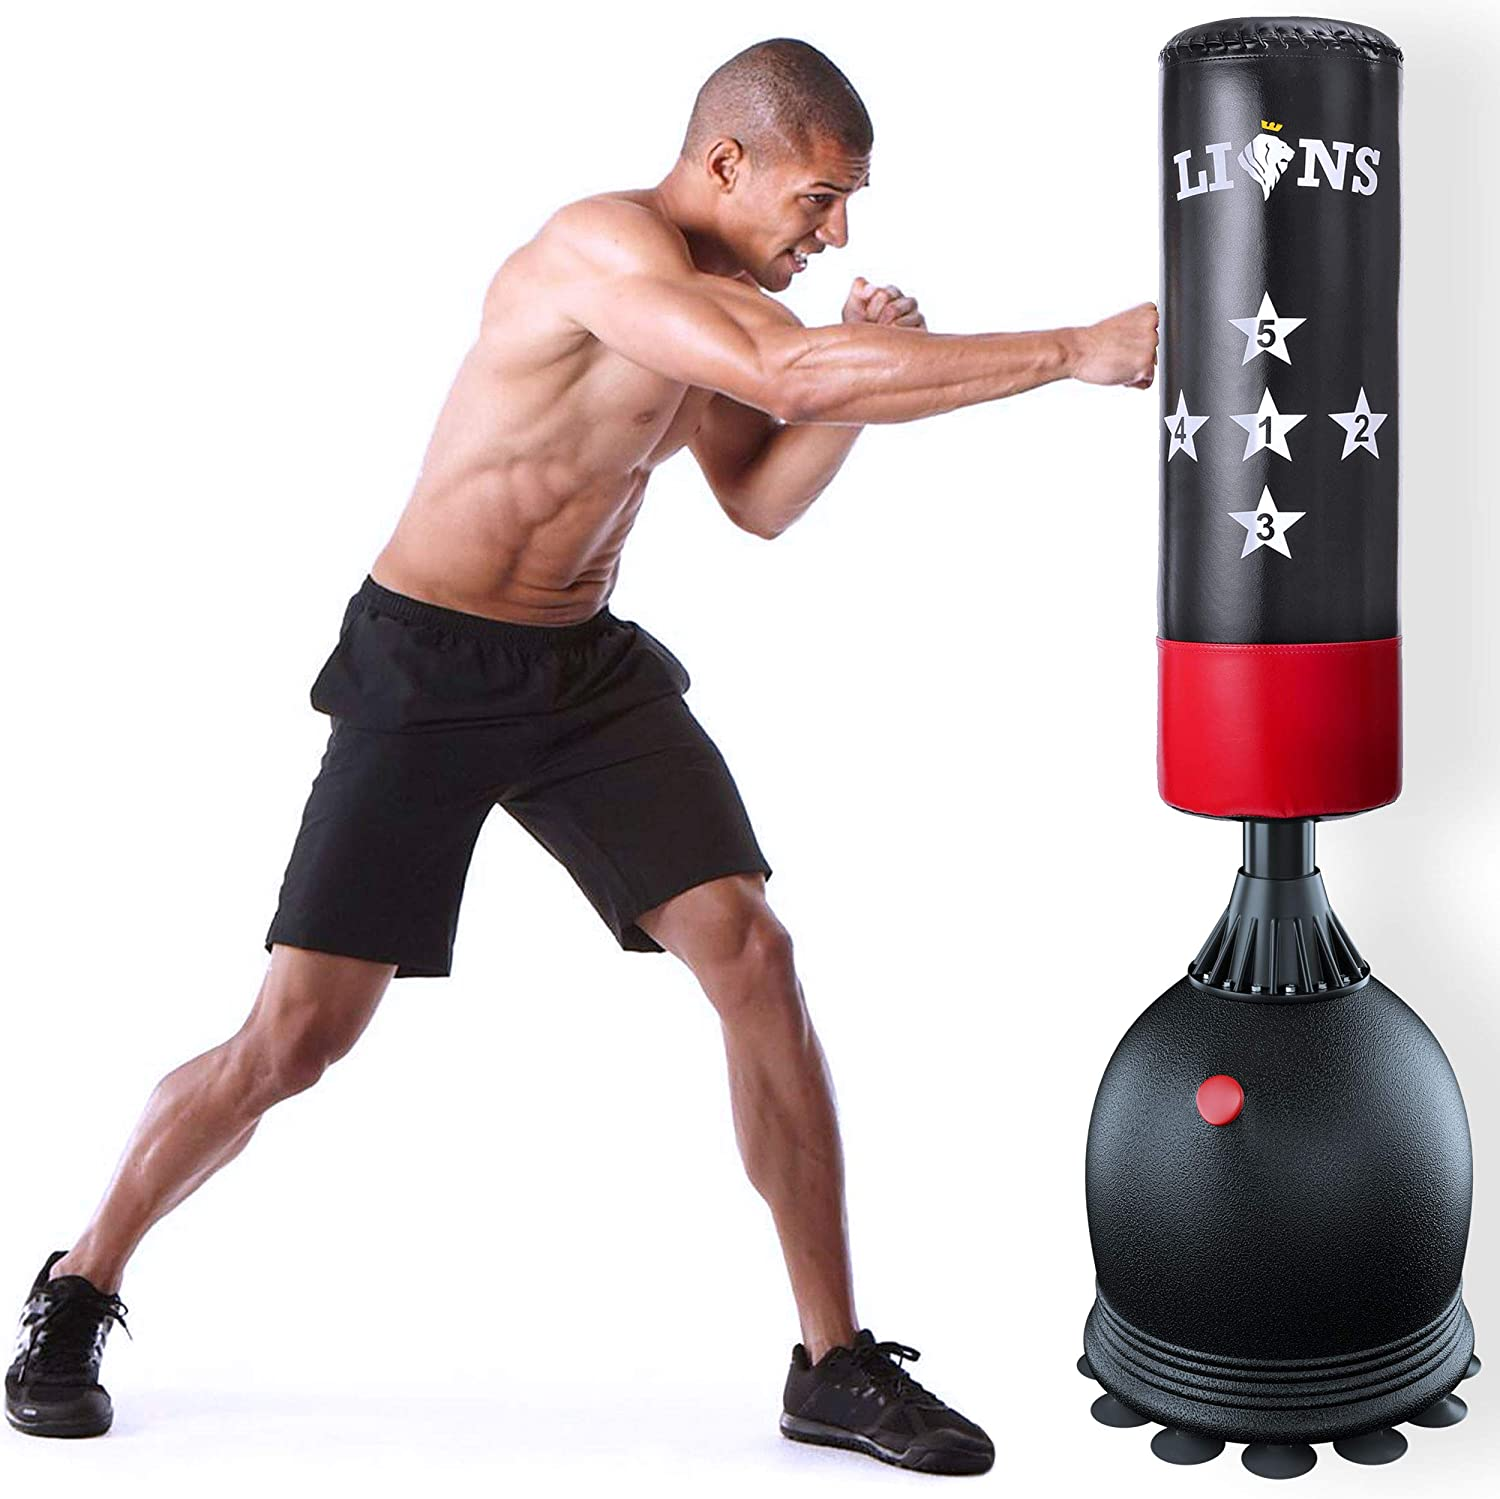 Best Free Standing Punch Bag for Home UK